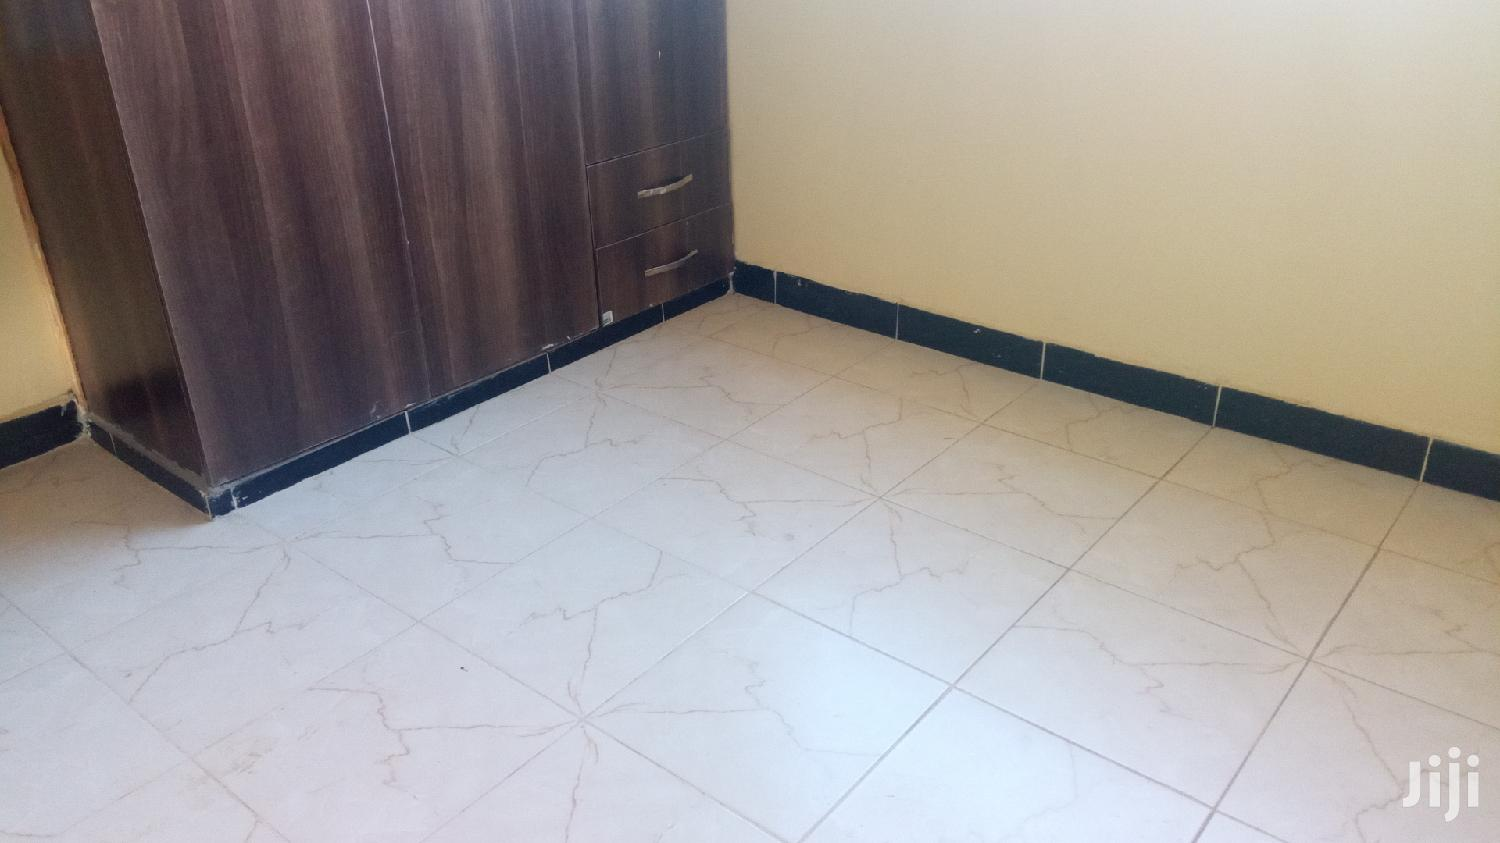 Archive: 2,3 Bedrooms Executive Apartment in Ongata Rongai for Rent